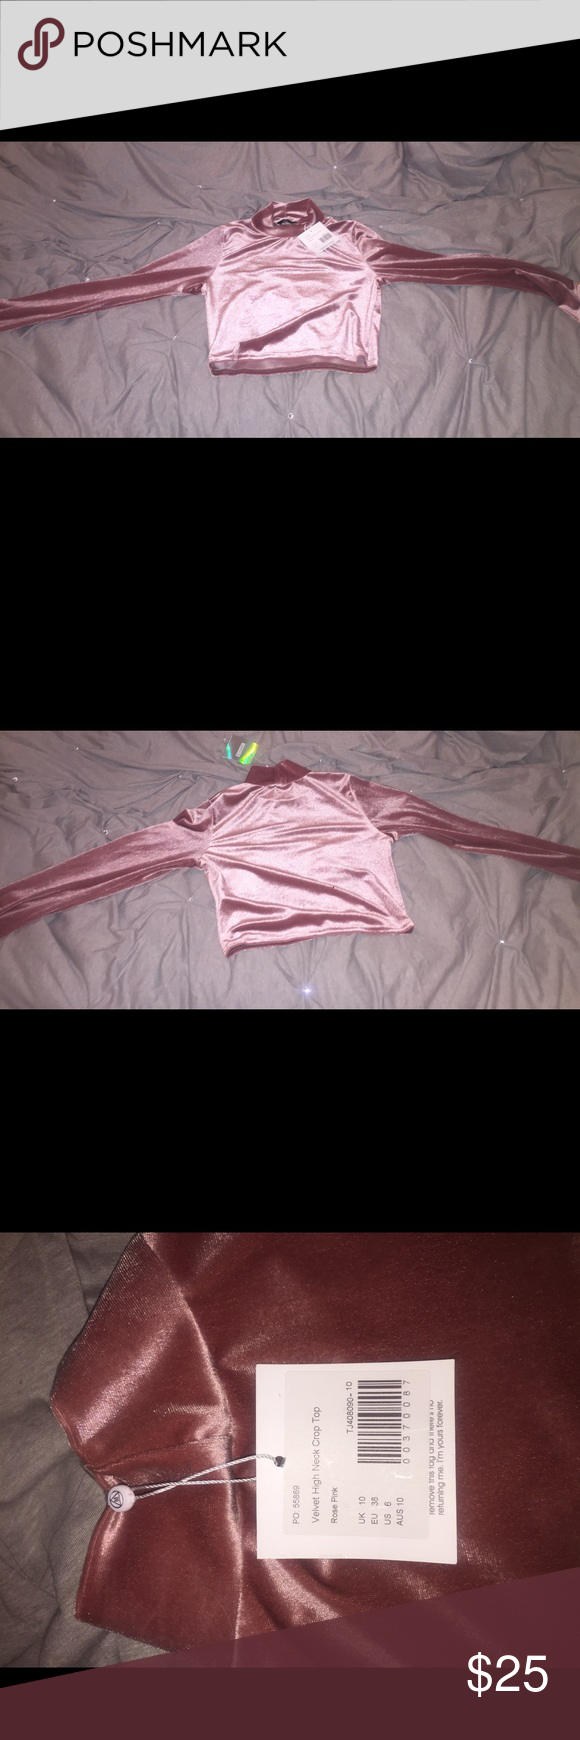 Pink Velvet Missguided shirt This is a pink velvet shirt from Missguided. It was bought in November and never worn Missguided Tops Blouses